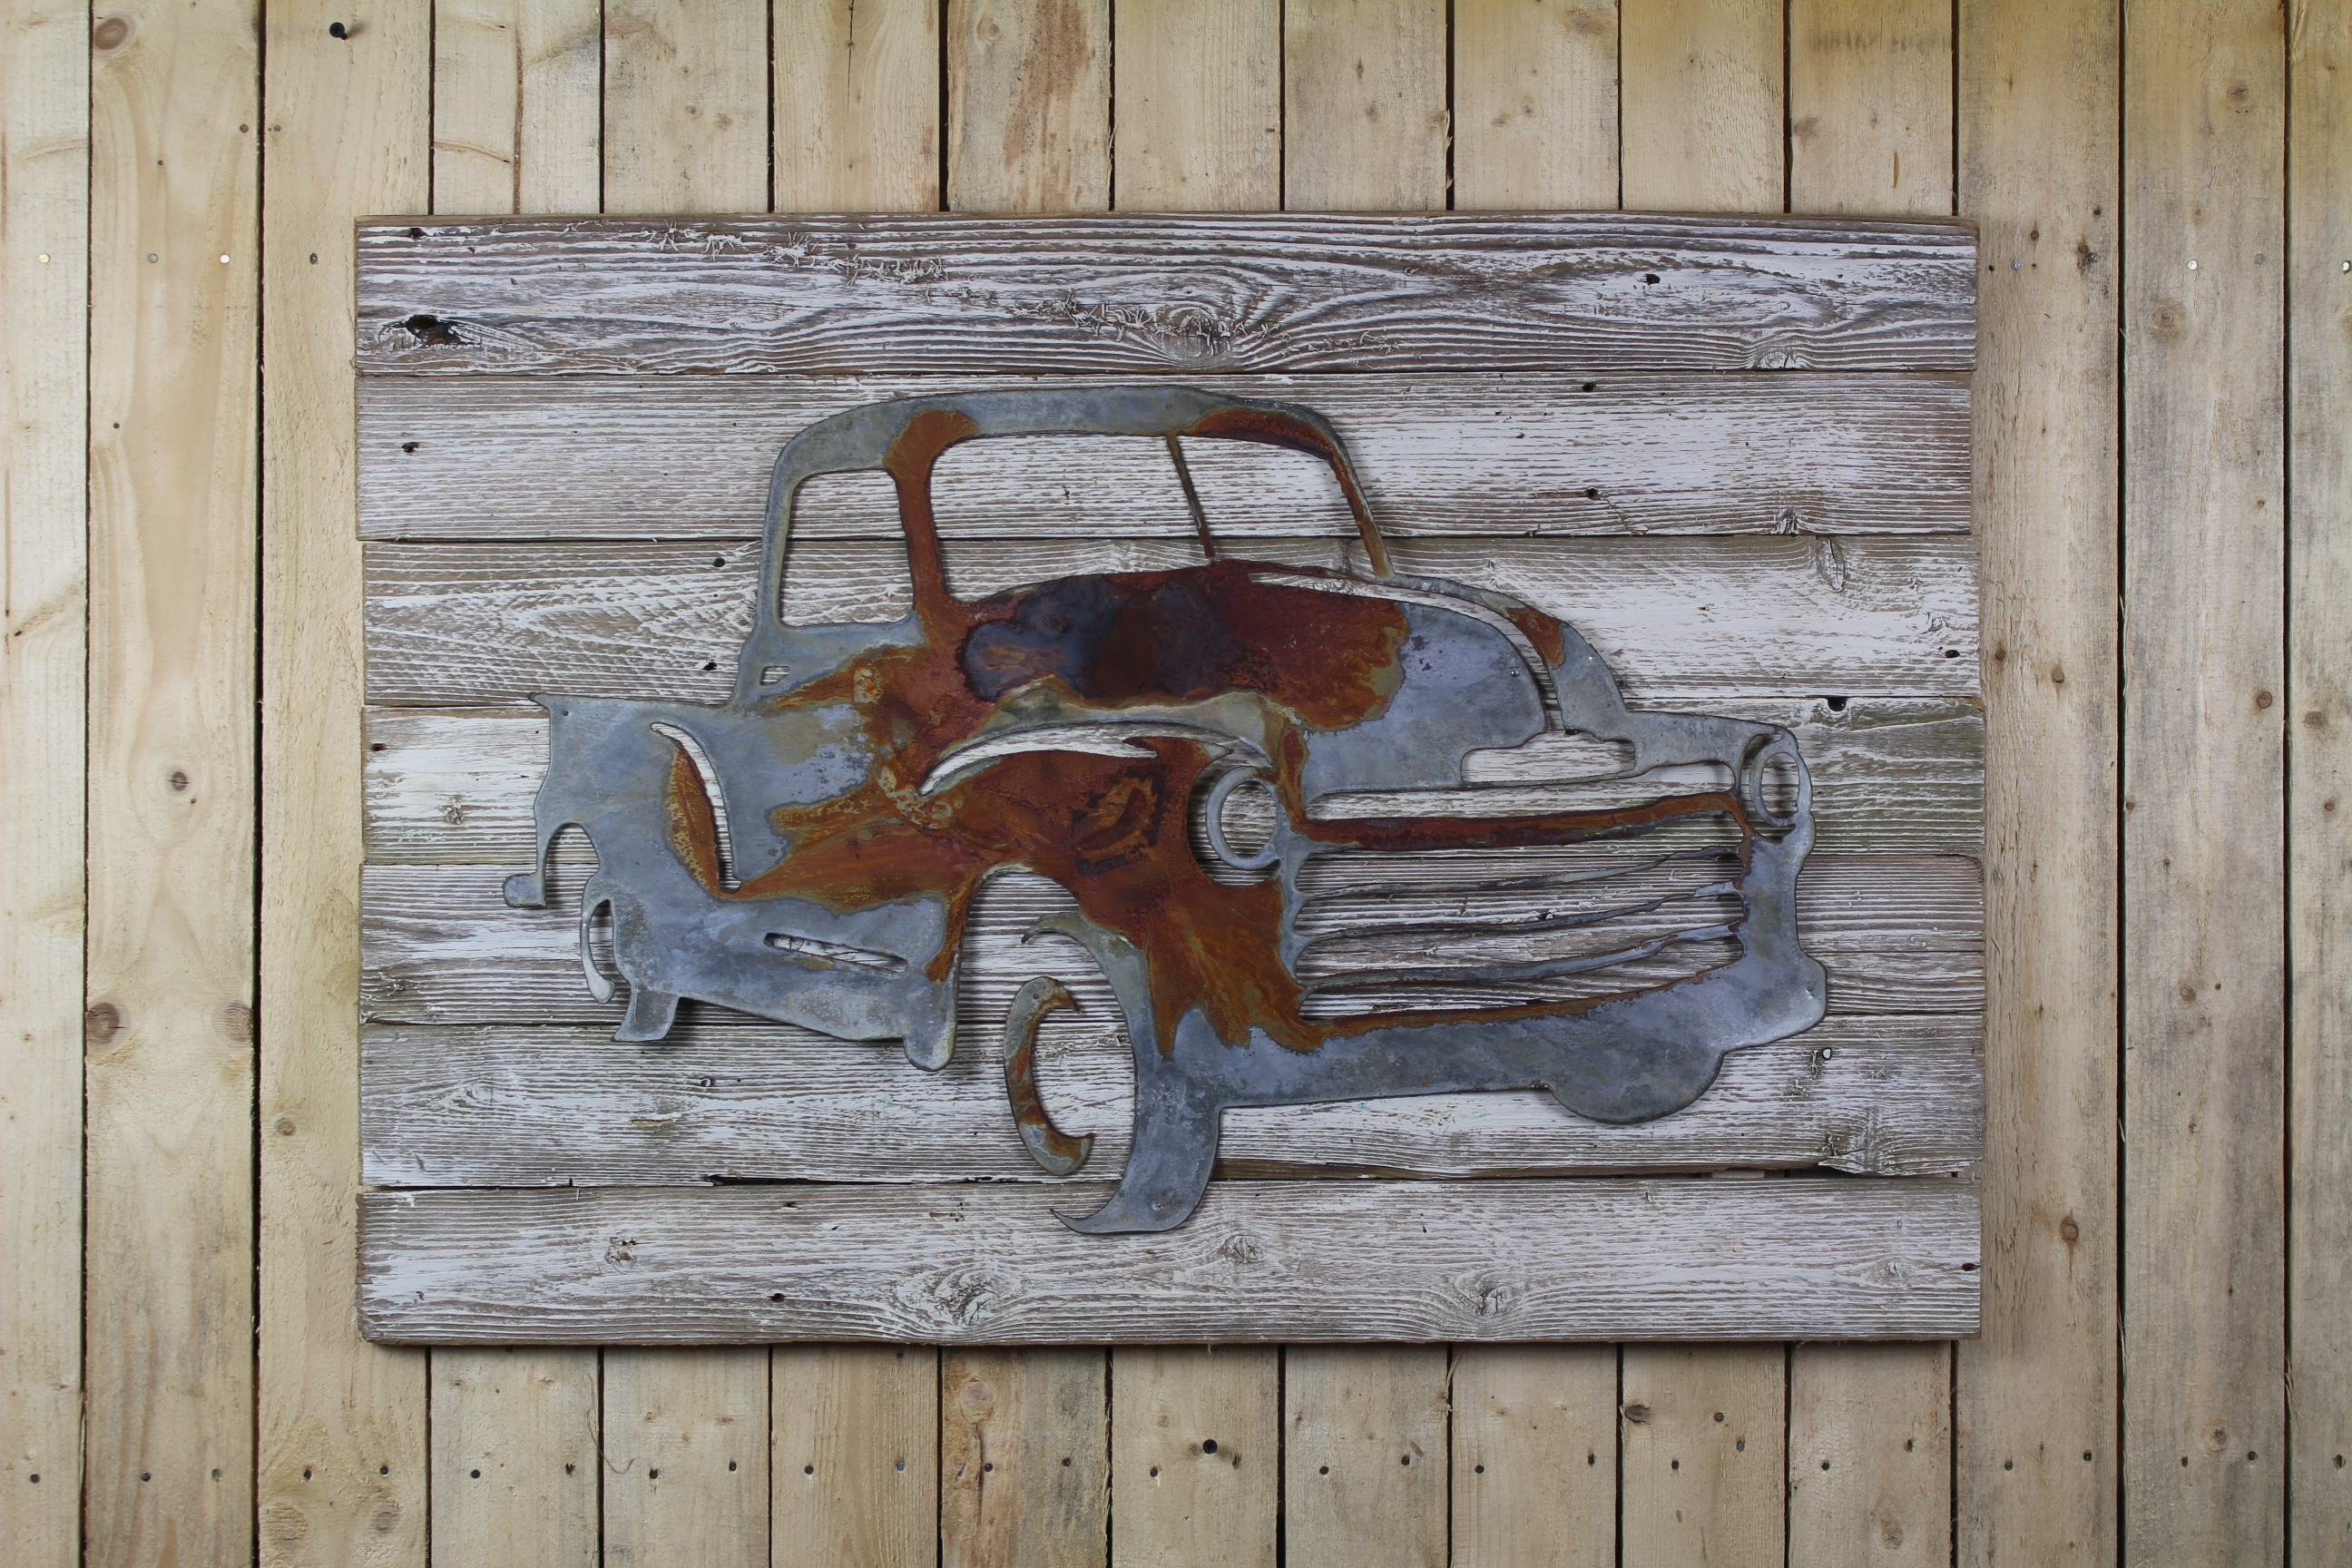 truck on wood back rustic metal letters wall art. Black Bedroom Furniture Sets. Home Design Ideas